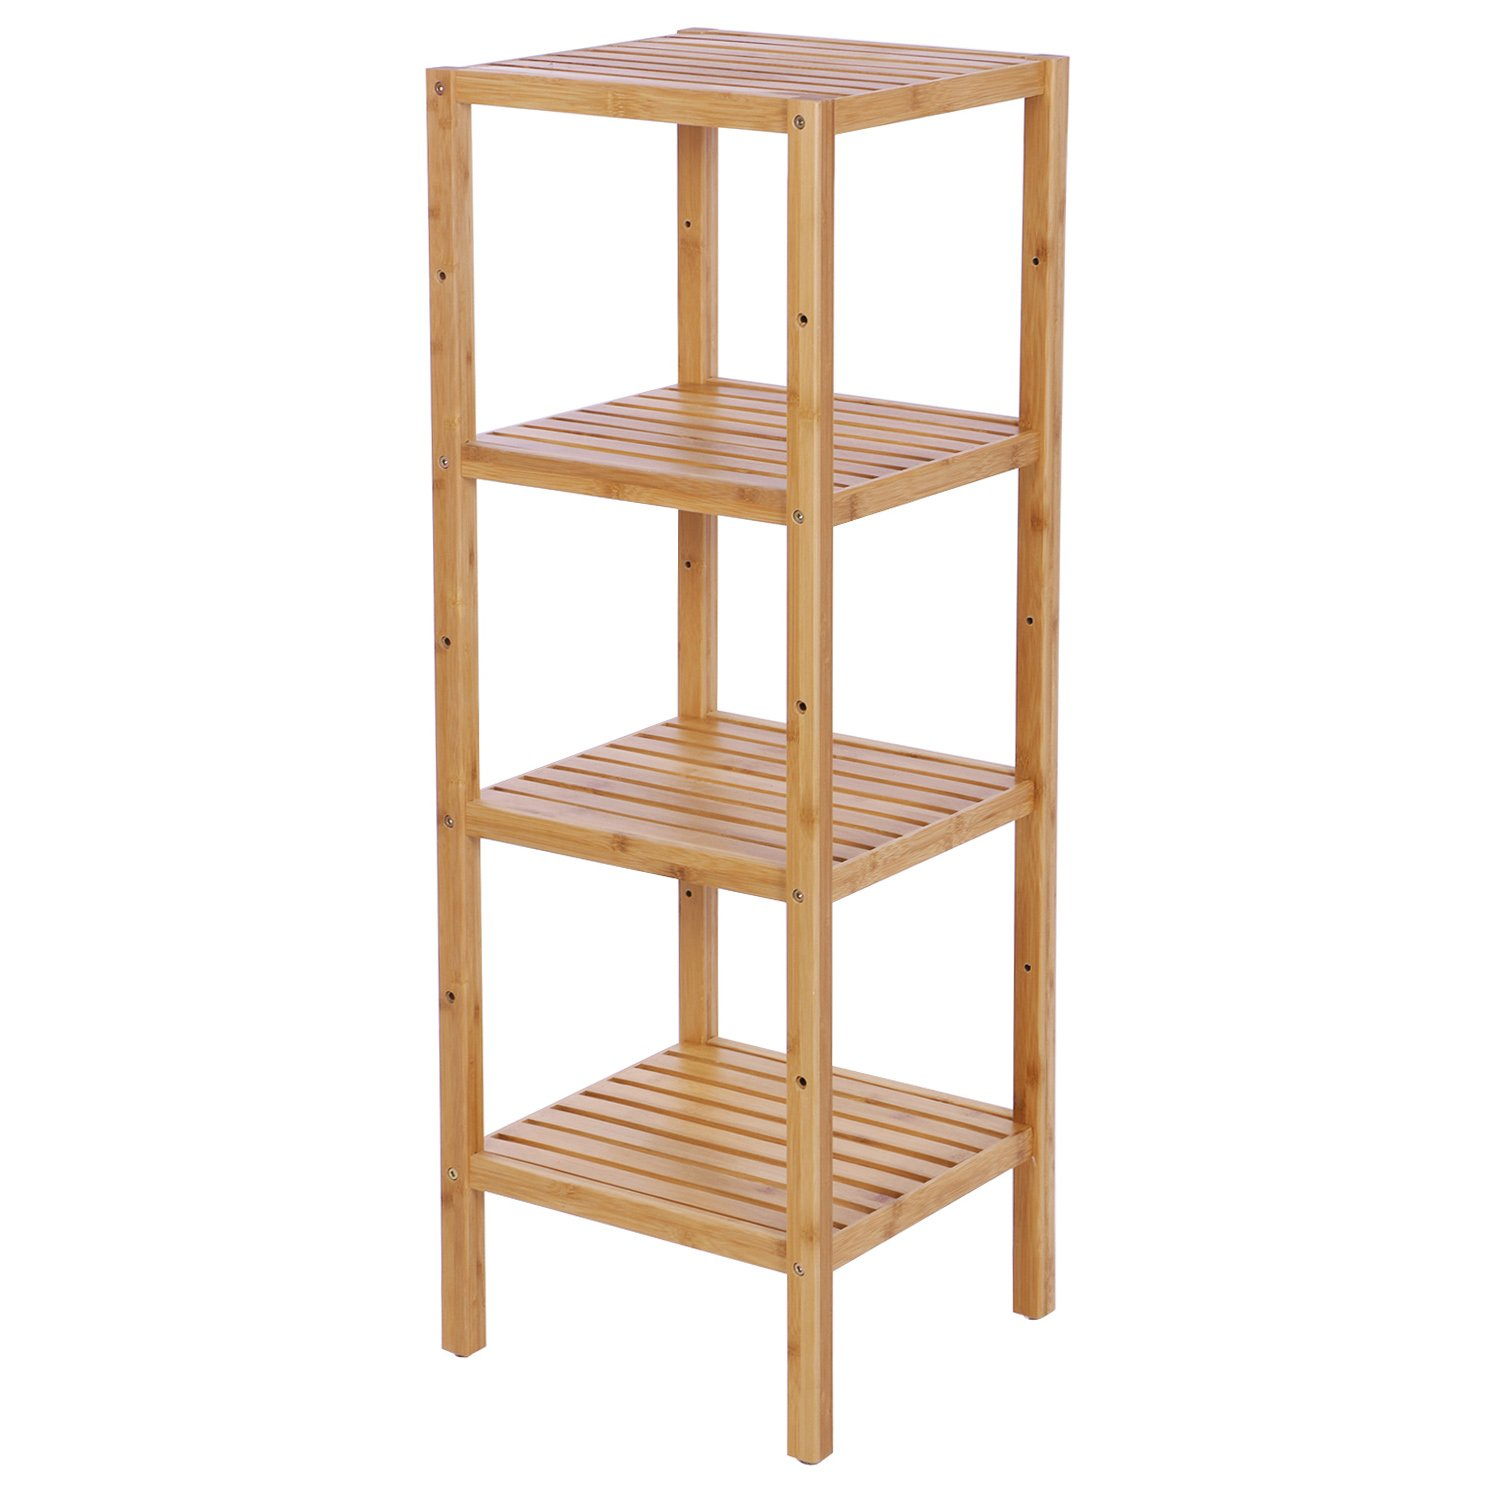 BEWISHOME Bamboo Bathroom Shelf 4 Tier DIY Multifunctional Utility Storage Rack Plant Flower Stand Narrow Shelving Unit Free standing shelf units for Bathroom Bedroom Balcony Kitchen KZW04Y